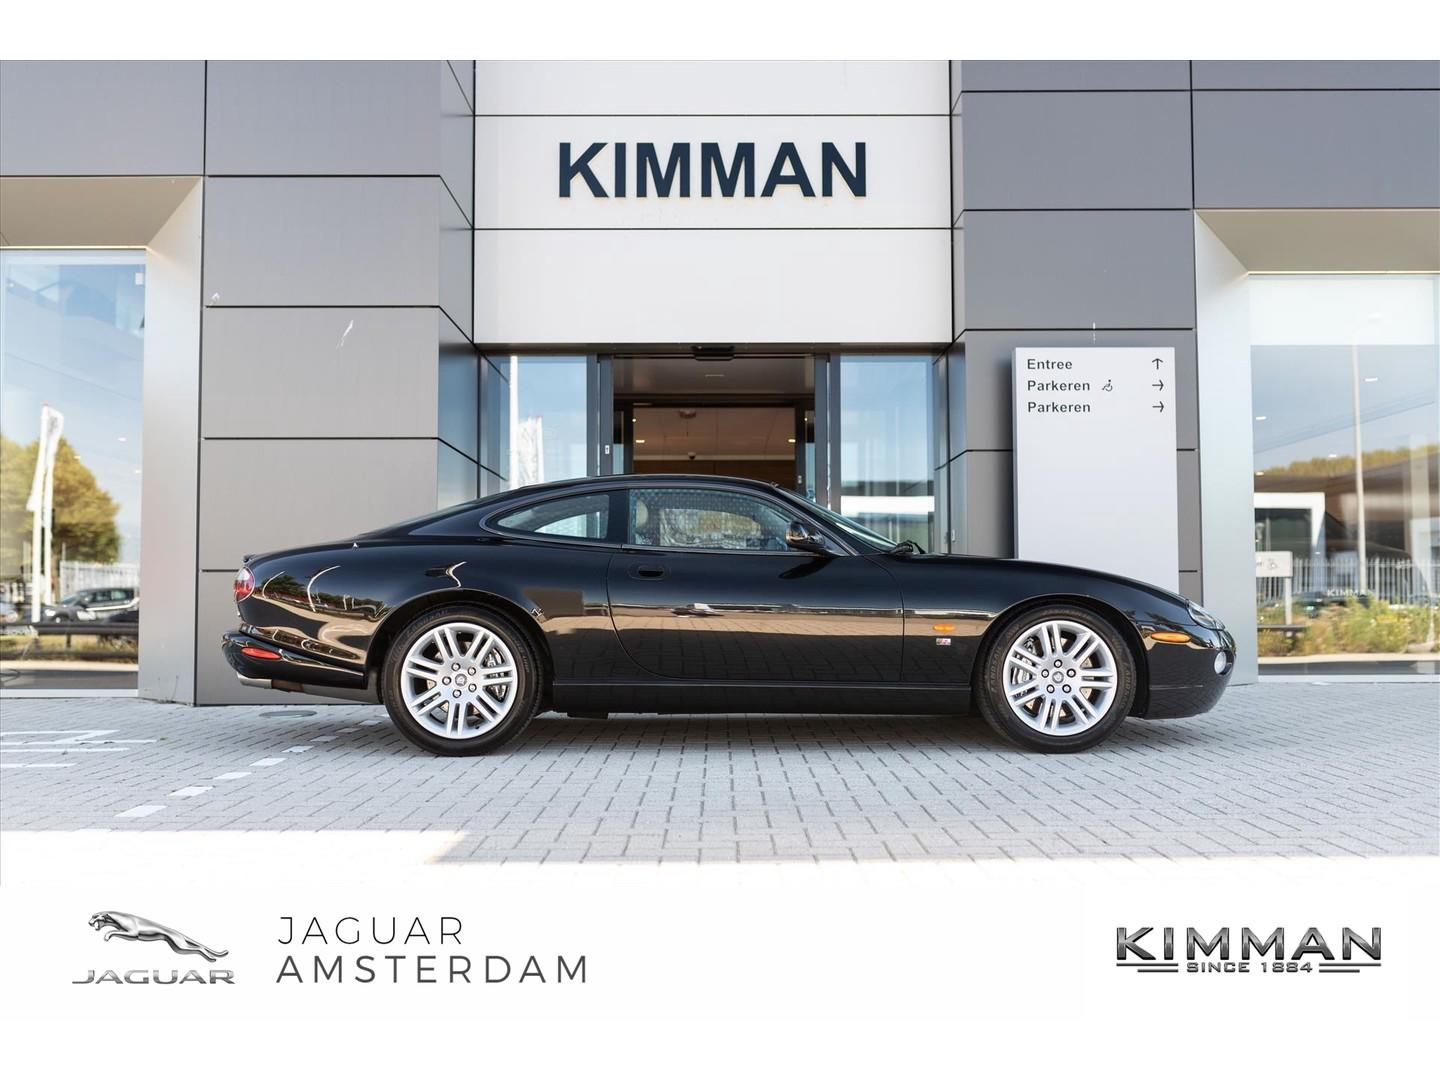 Jaguar Xkr 4.2 supercharger coupe